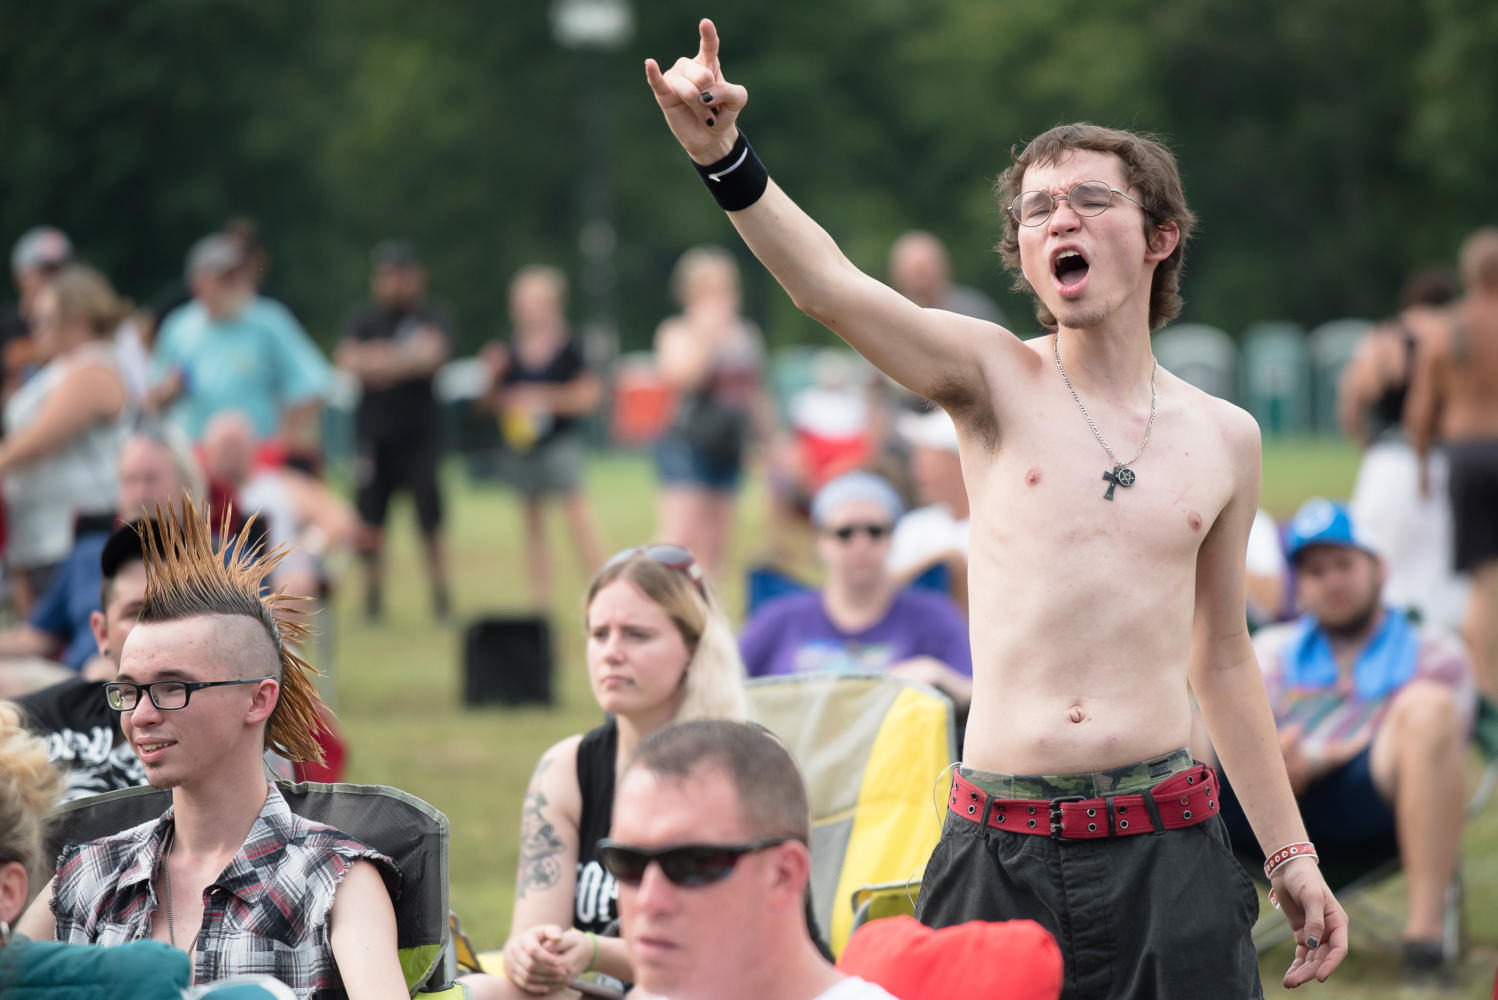 Zane+Risley%2C+of+Ridgeway%2C+pumps+his+fist+in+the+air+while+watching+Hell+Yeah+perform+Sunday%2C+Aug.+20%2C+2017%2C+during+the+third+day+of+Moonstock+at+Walker%E2%80%99s+Bluff+Winery+in+Carterville.++%28William+Cooley+%7C+%40Wcooley1980%29